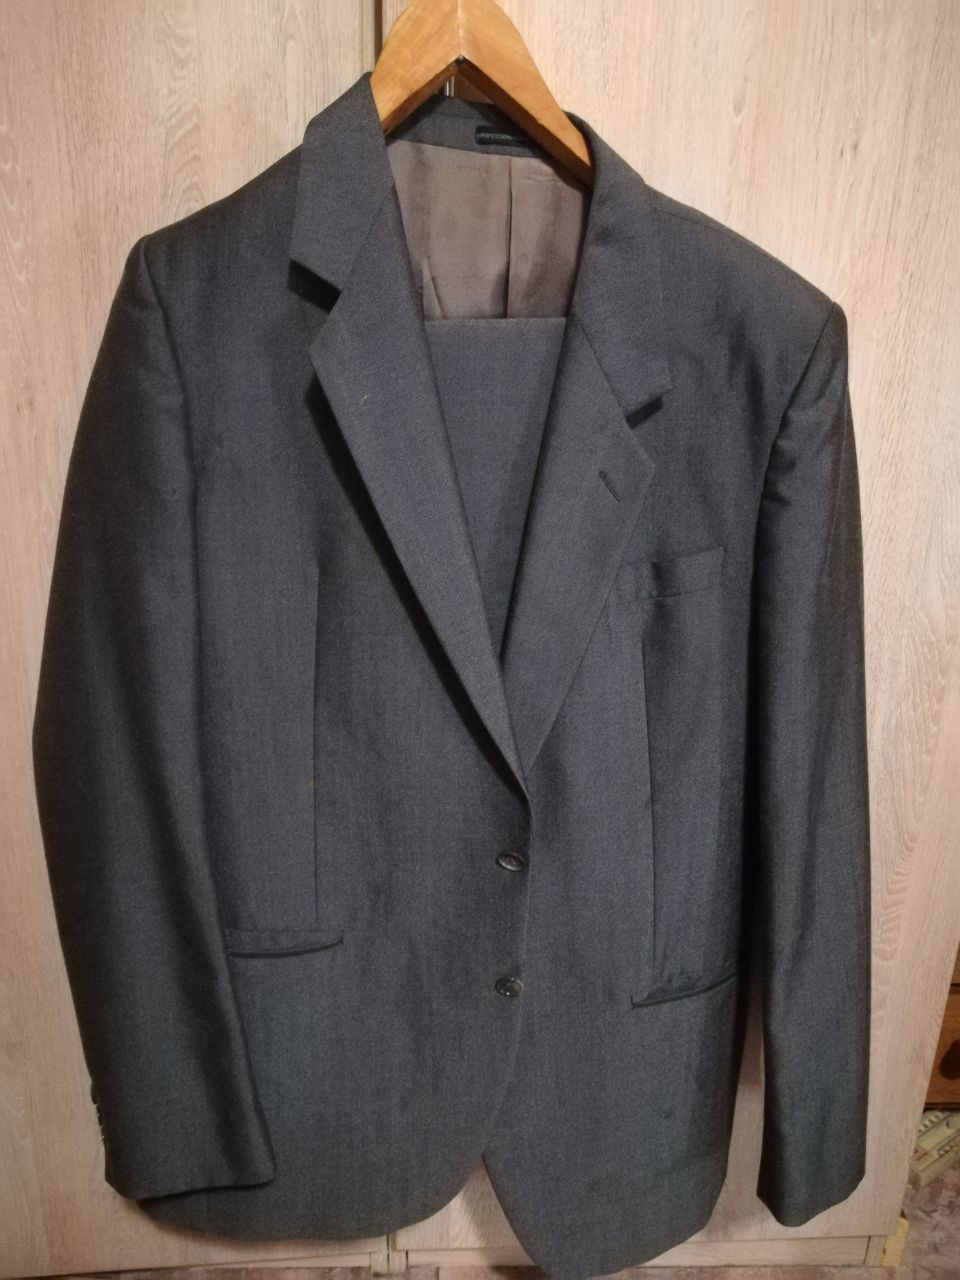 Real Trivera suit